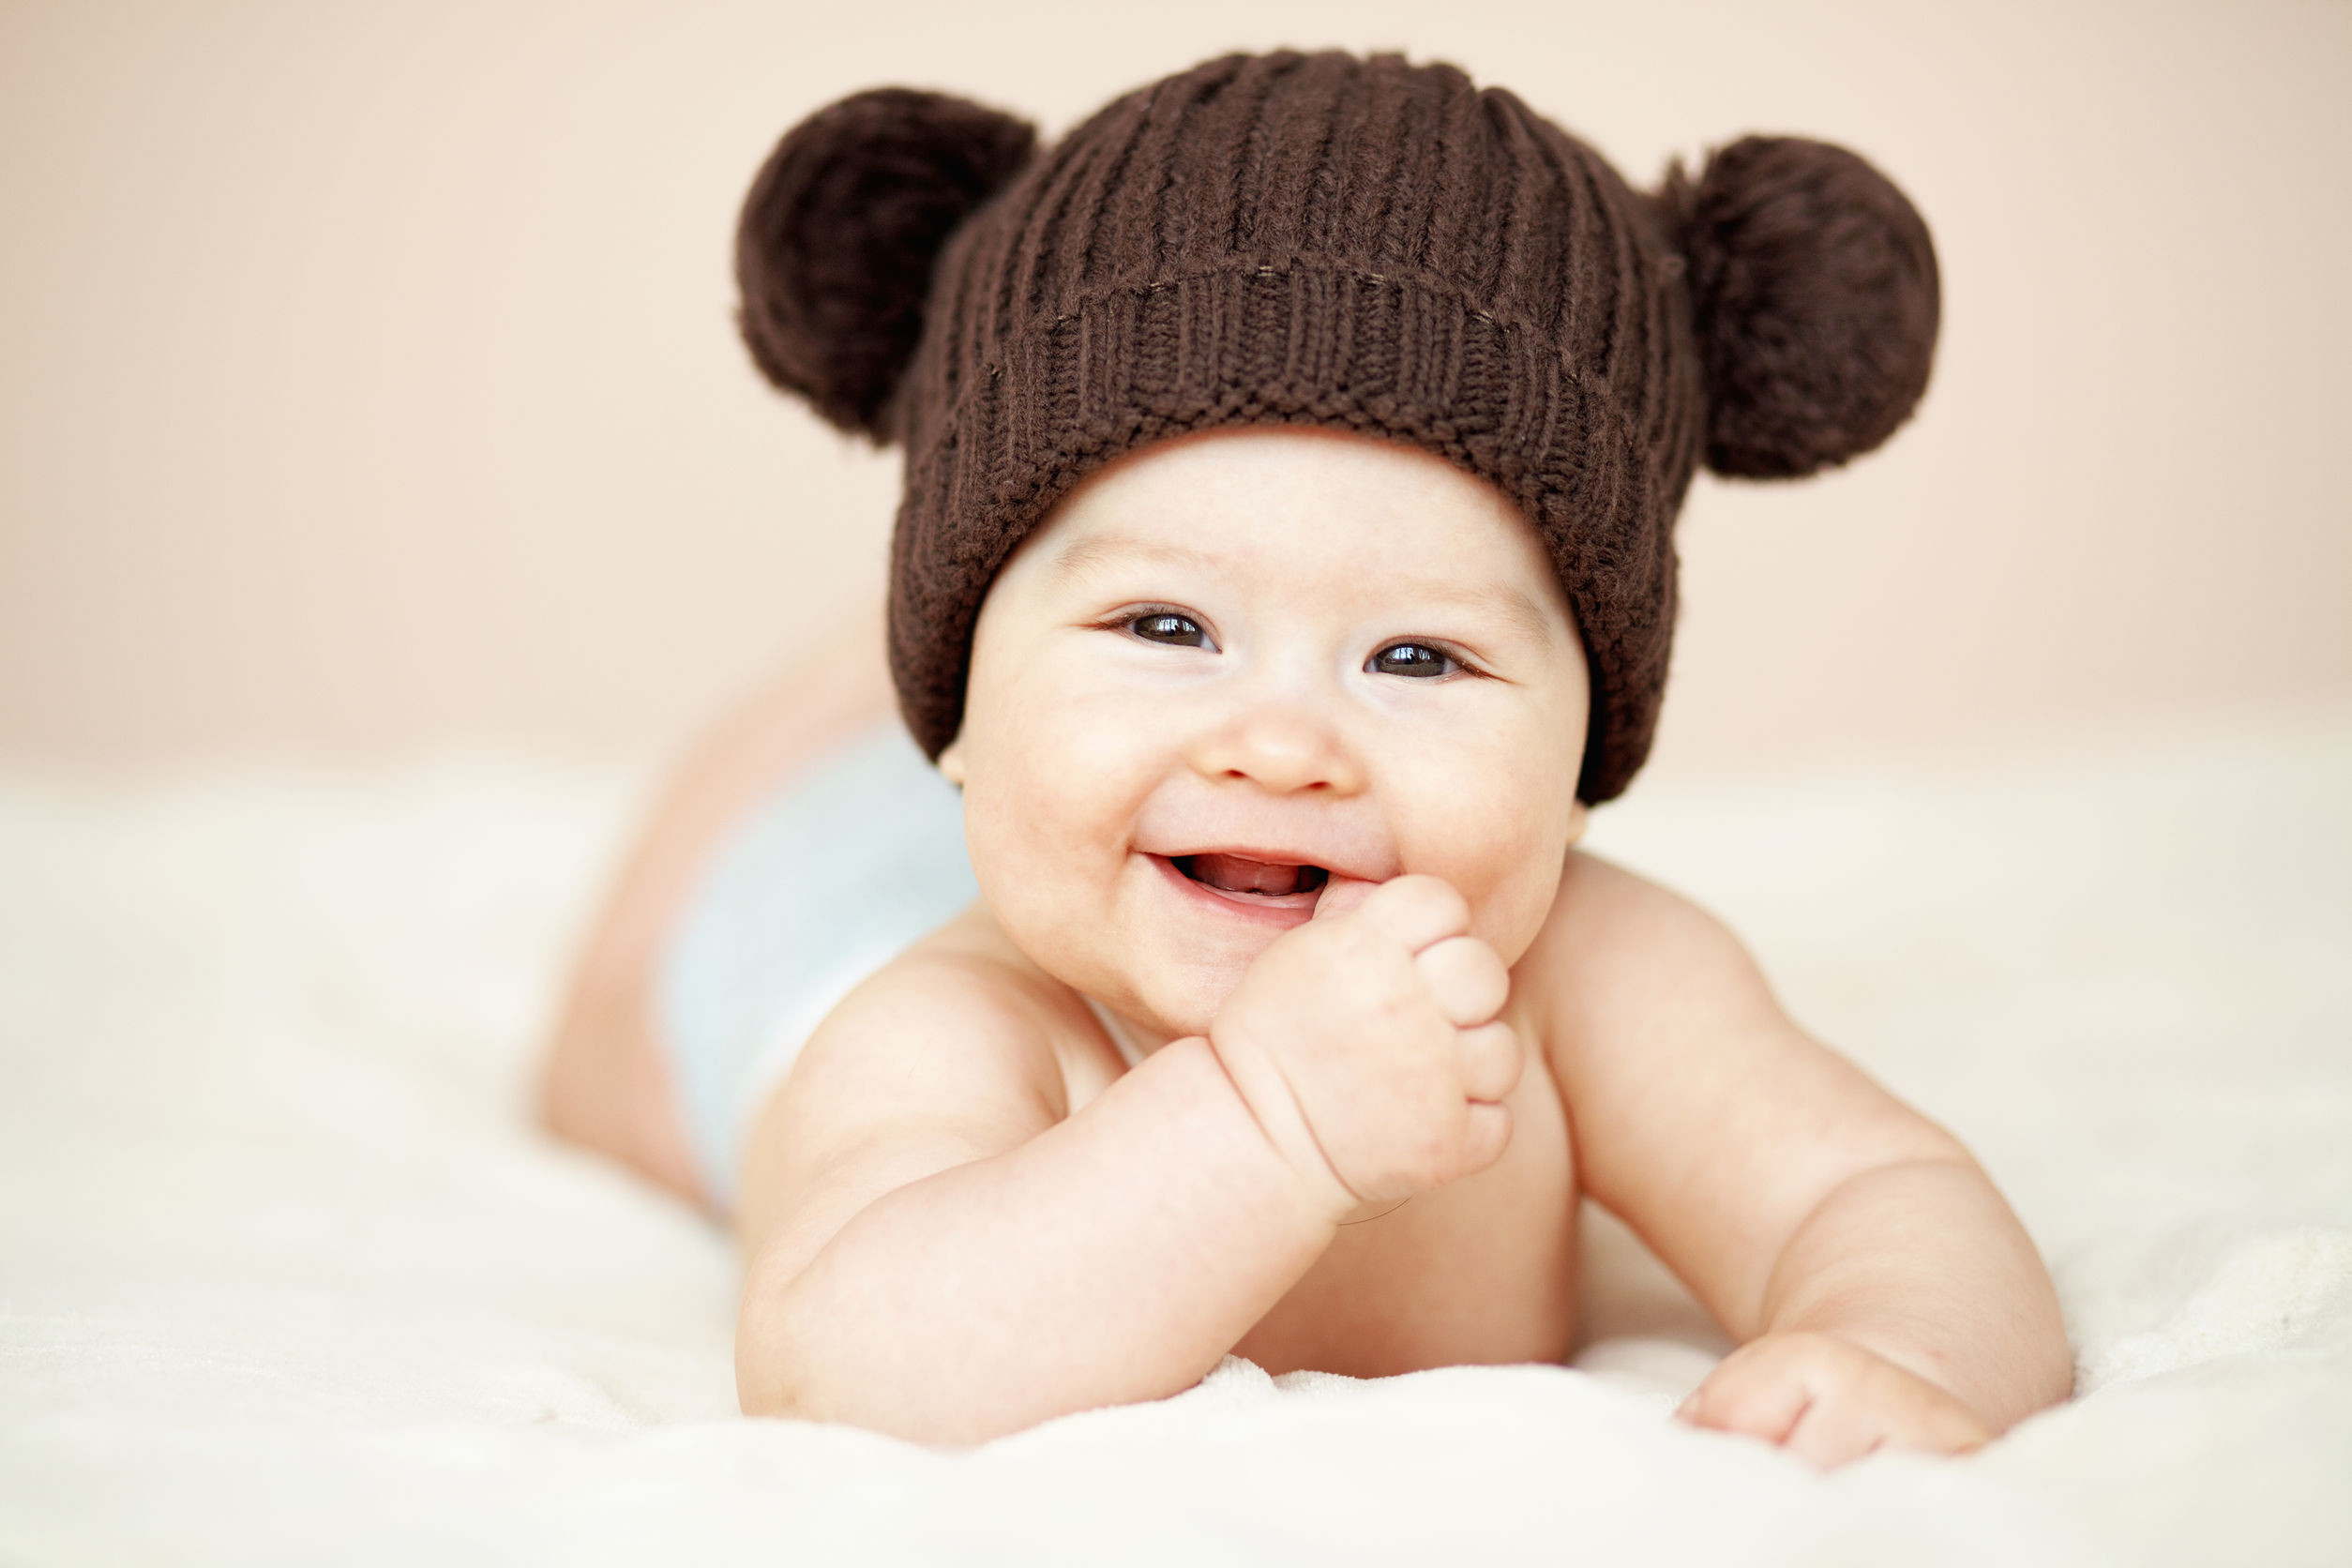 Res: 2508x1672, Awesome Cute Newly Born Babies Hd Wallpaper New Child Images Of Iphone